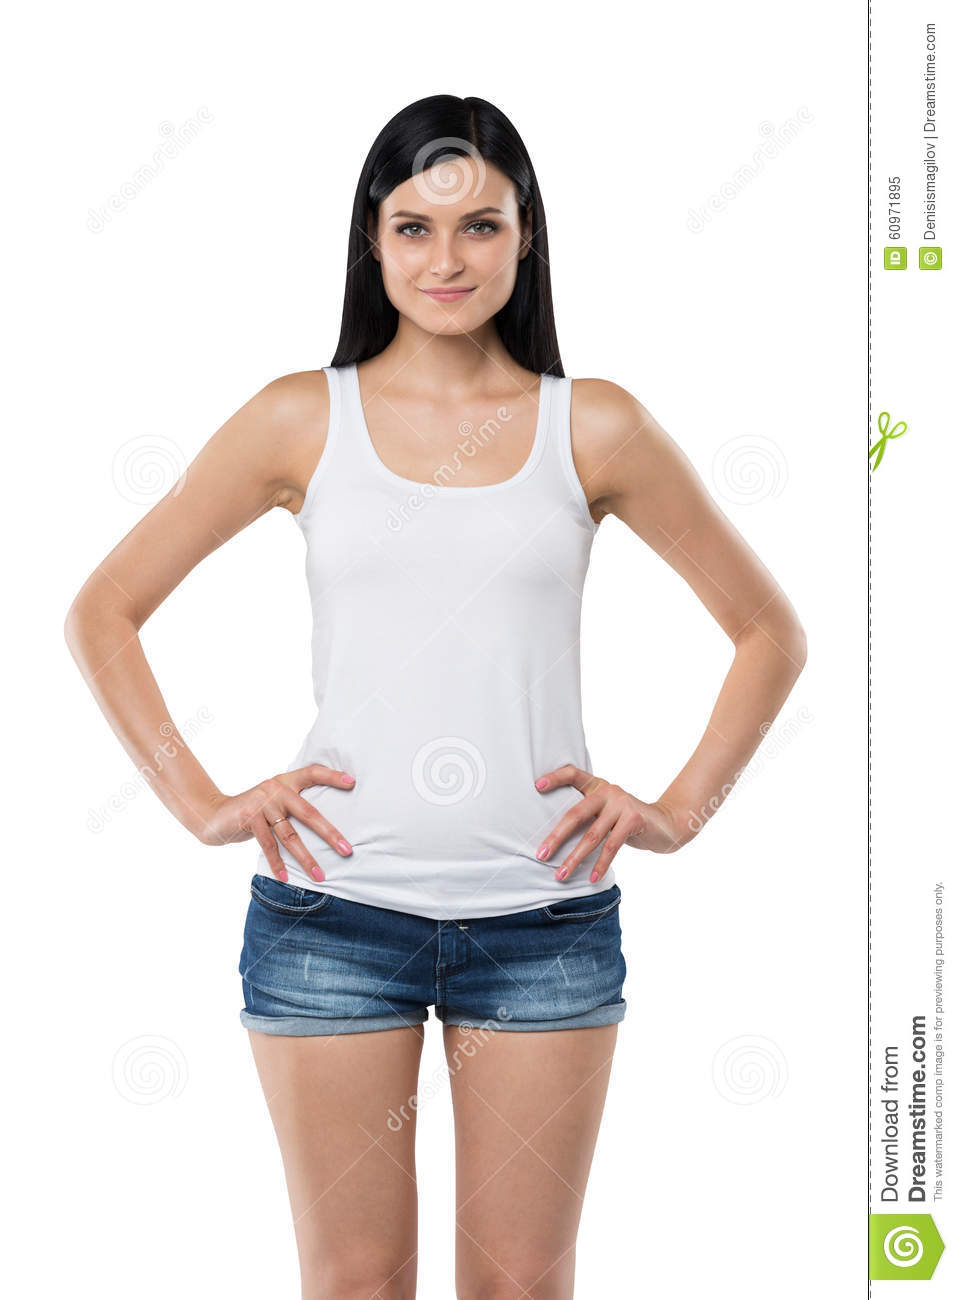 Woman Is In A White Tank Top And Blue Denim Shorts. Isolated. Stock Image - Image of friendly ...